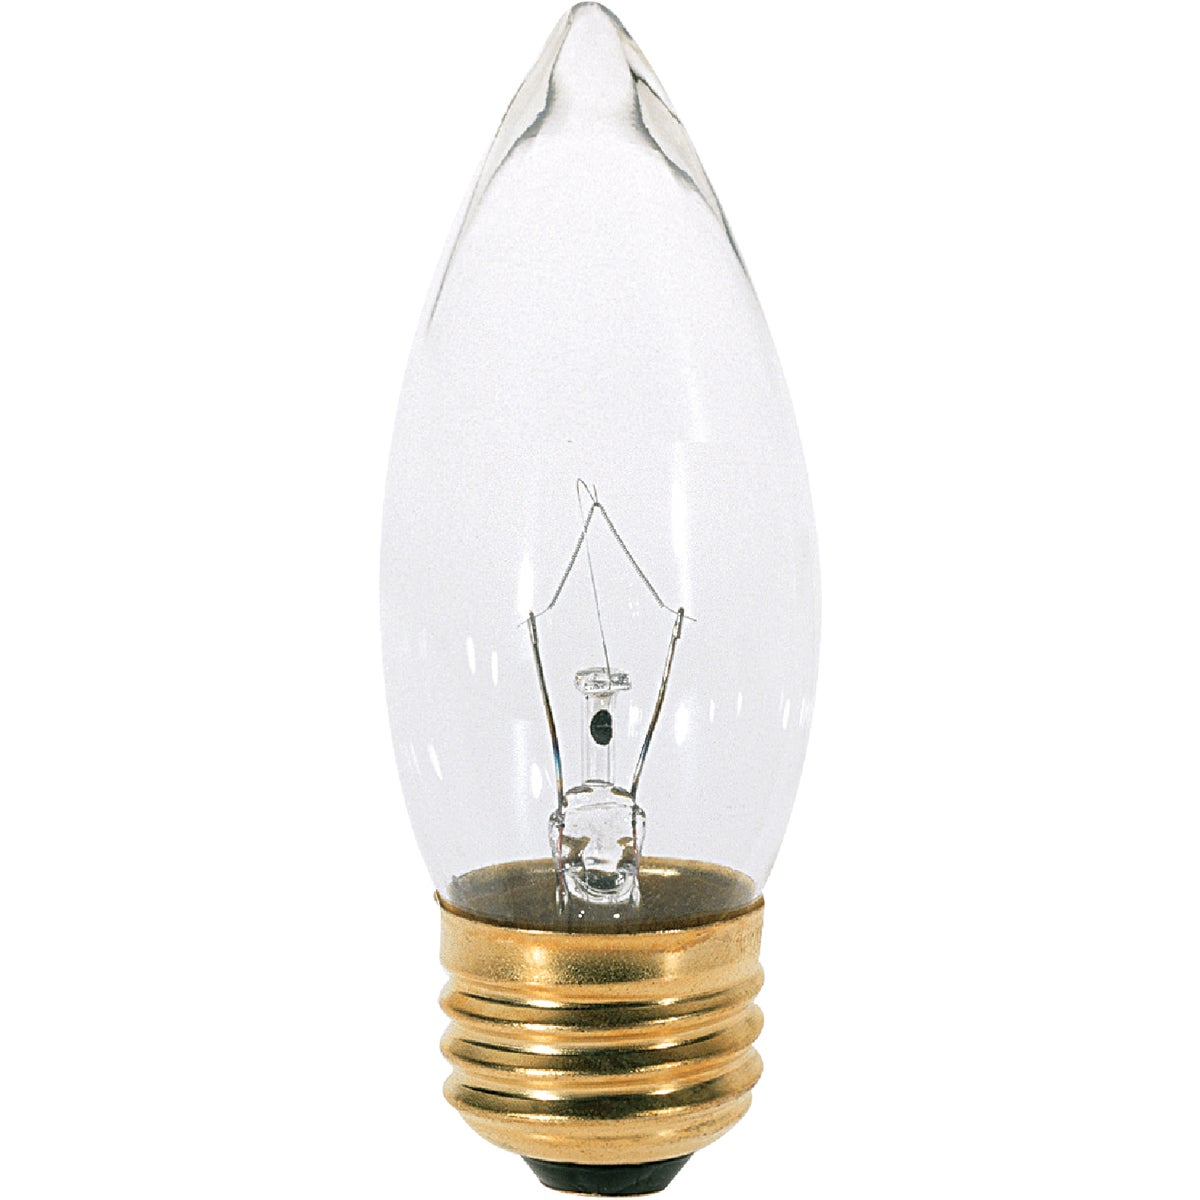 40W 2PK CLR CANDLE BULB - 12993 40BM by G E Lighting